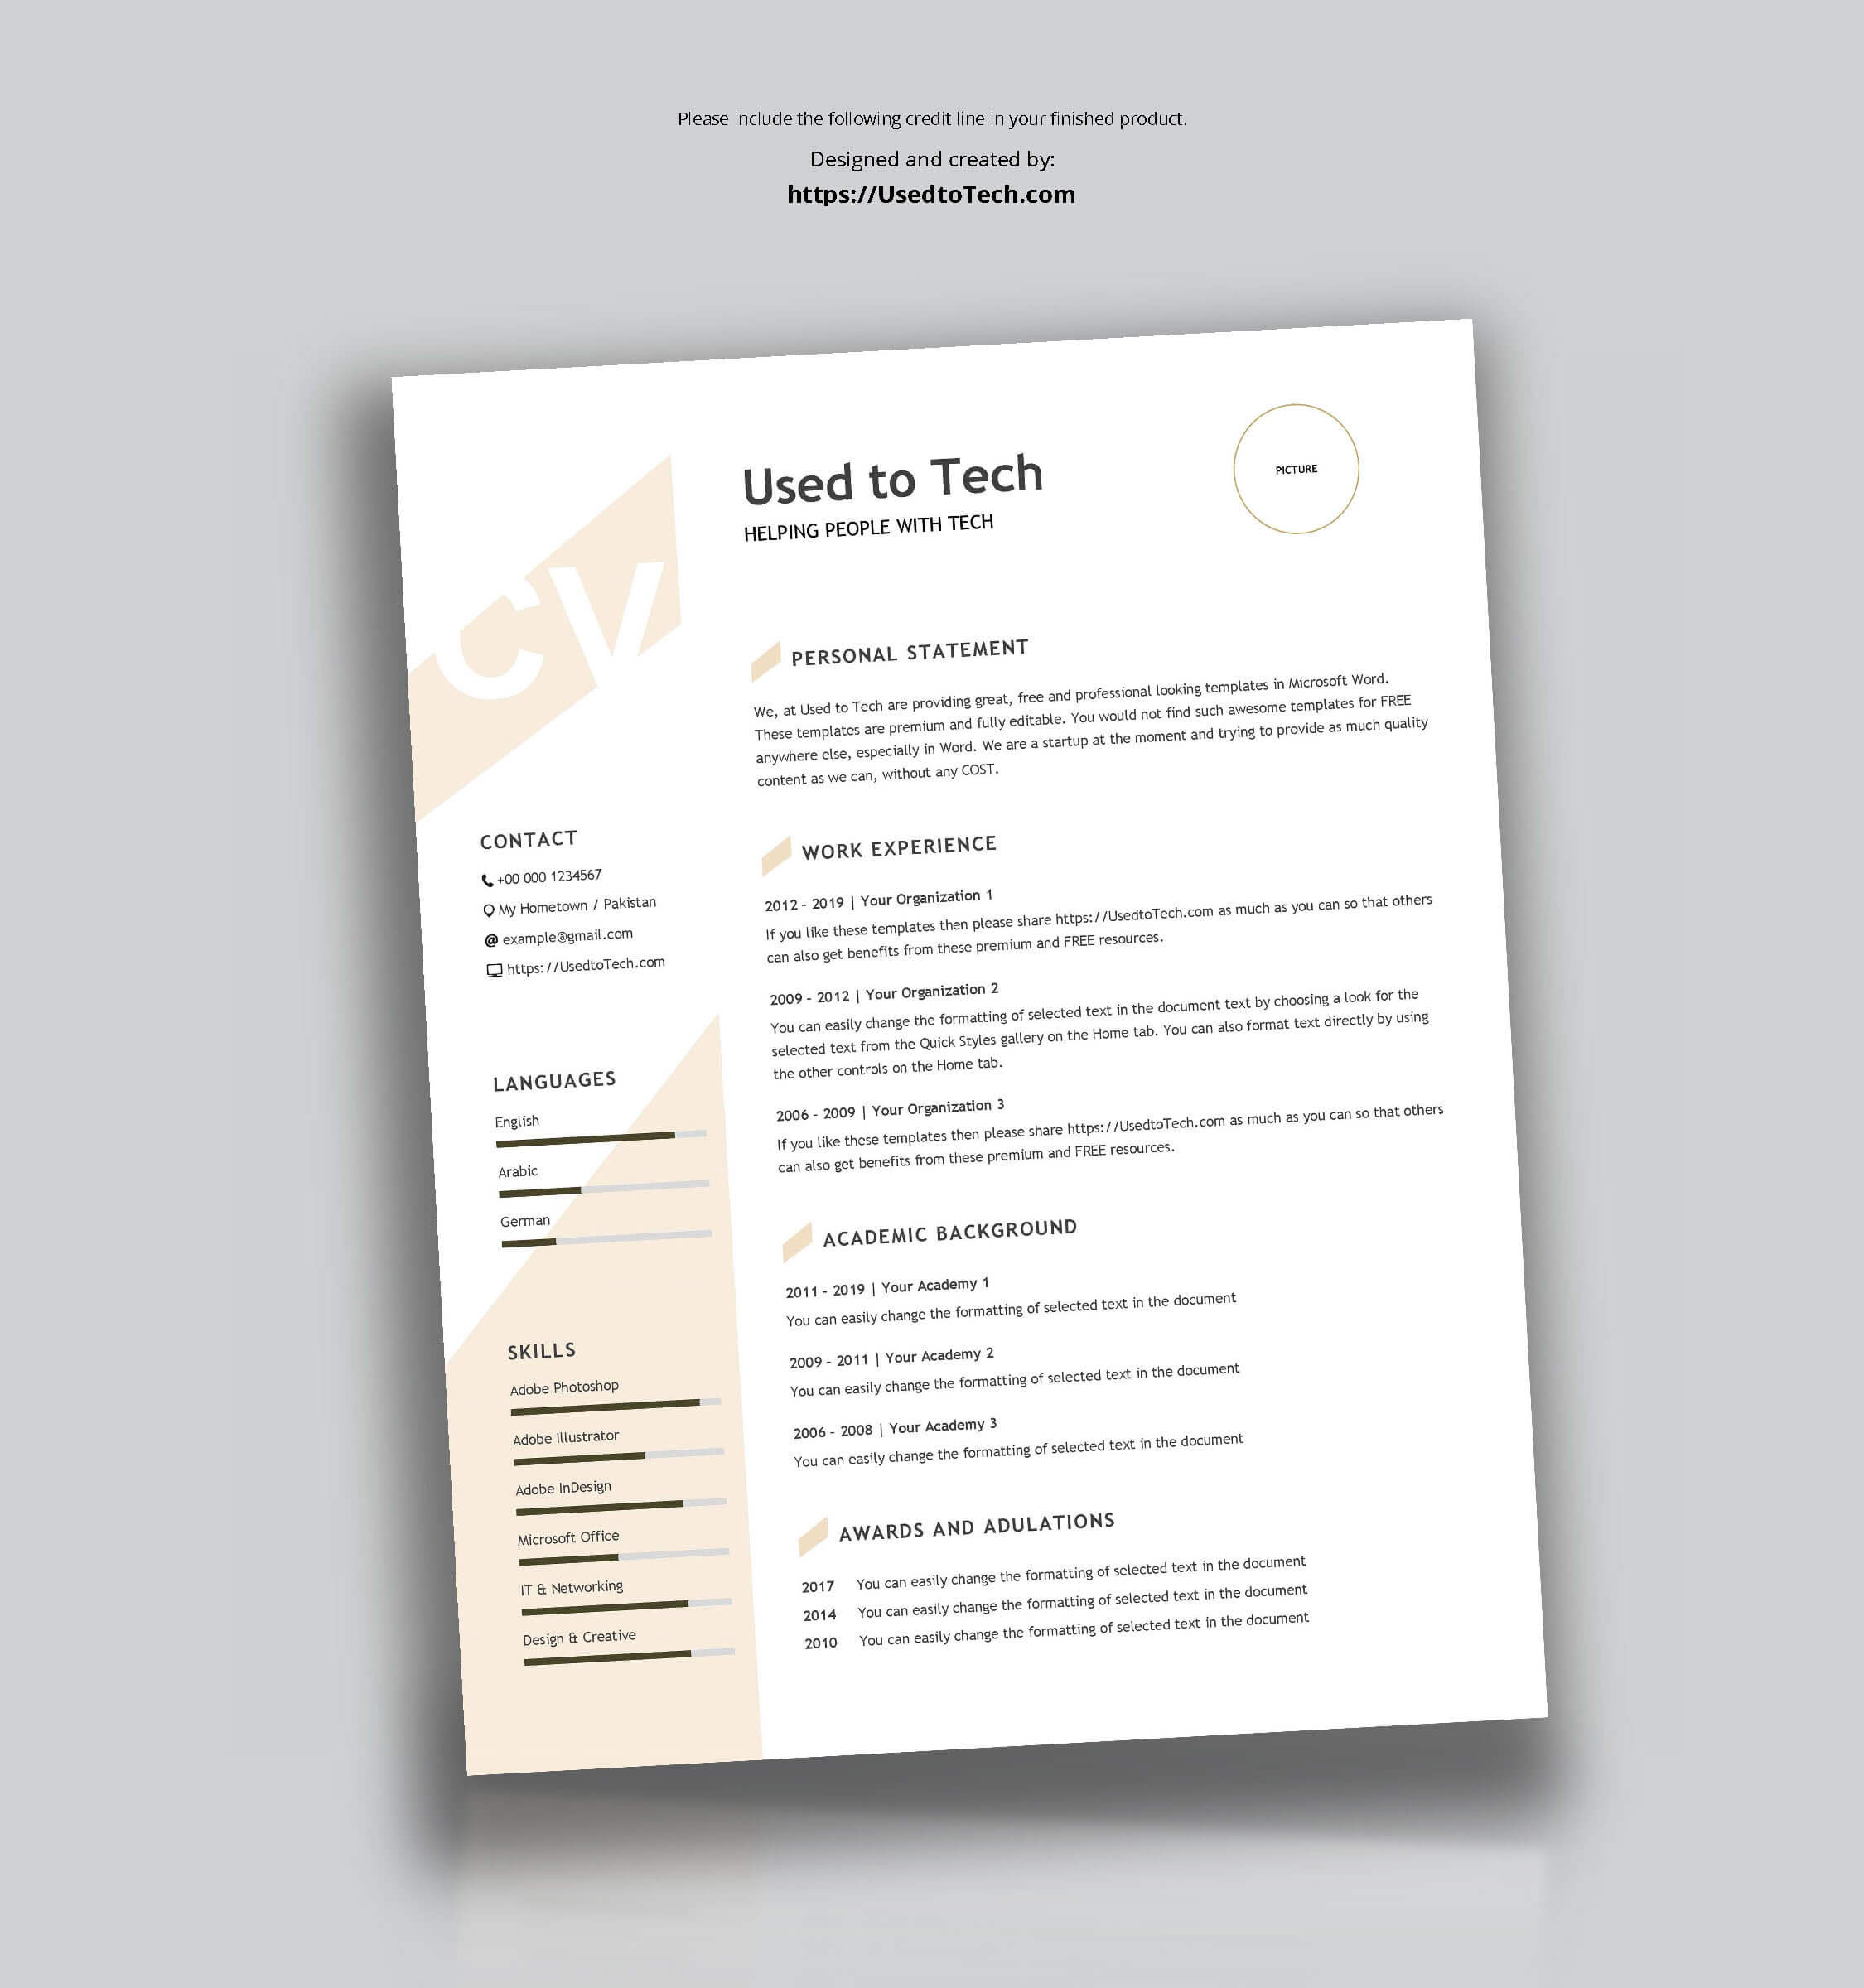 Modern Resume Template In Word Free - Used To Tech in How To Get A Resume Template On Word